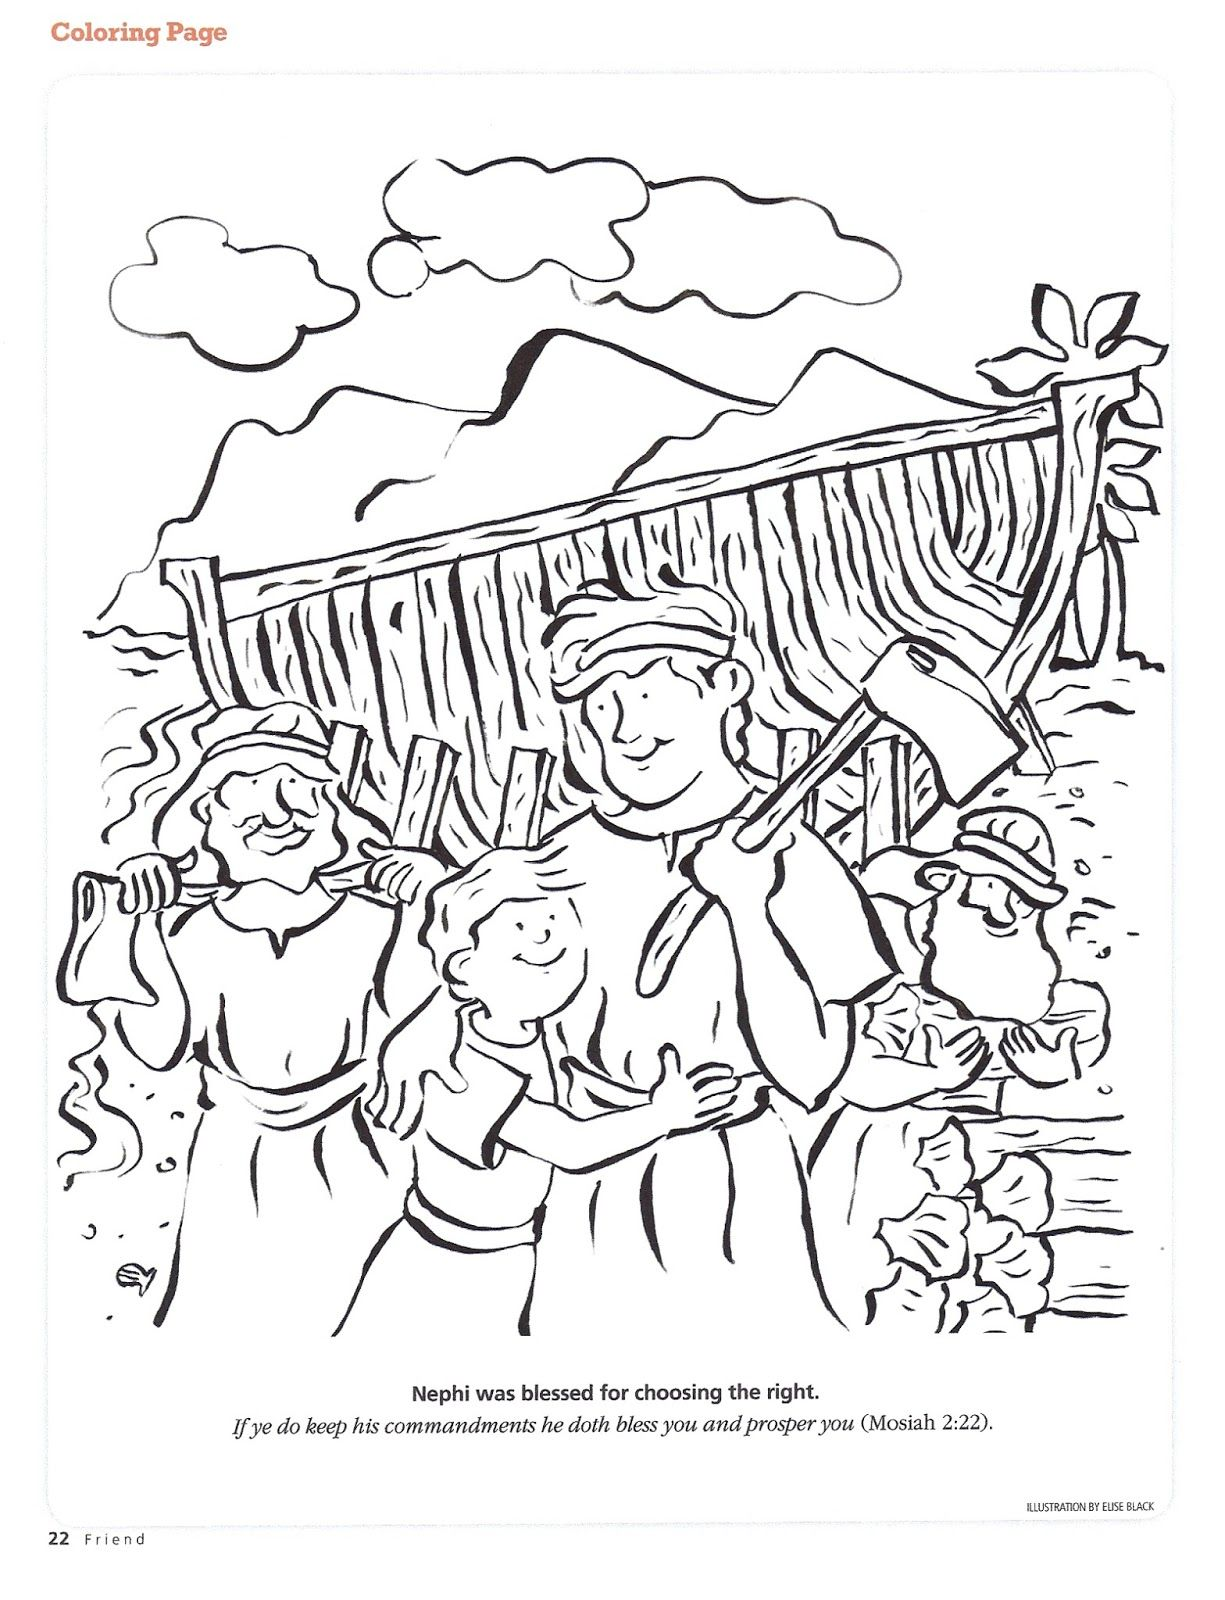 Primary 4 Manual Lesson 6 Heavenly Father Commands Nephi